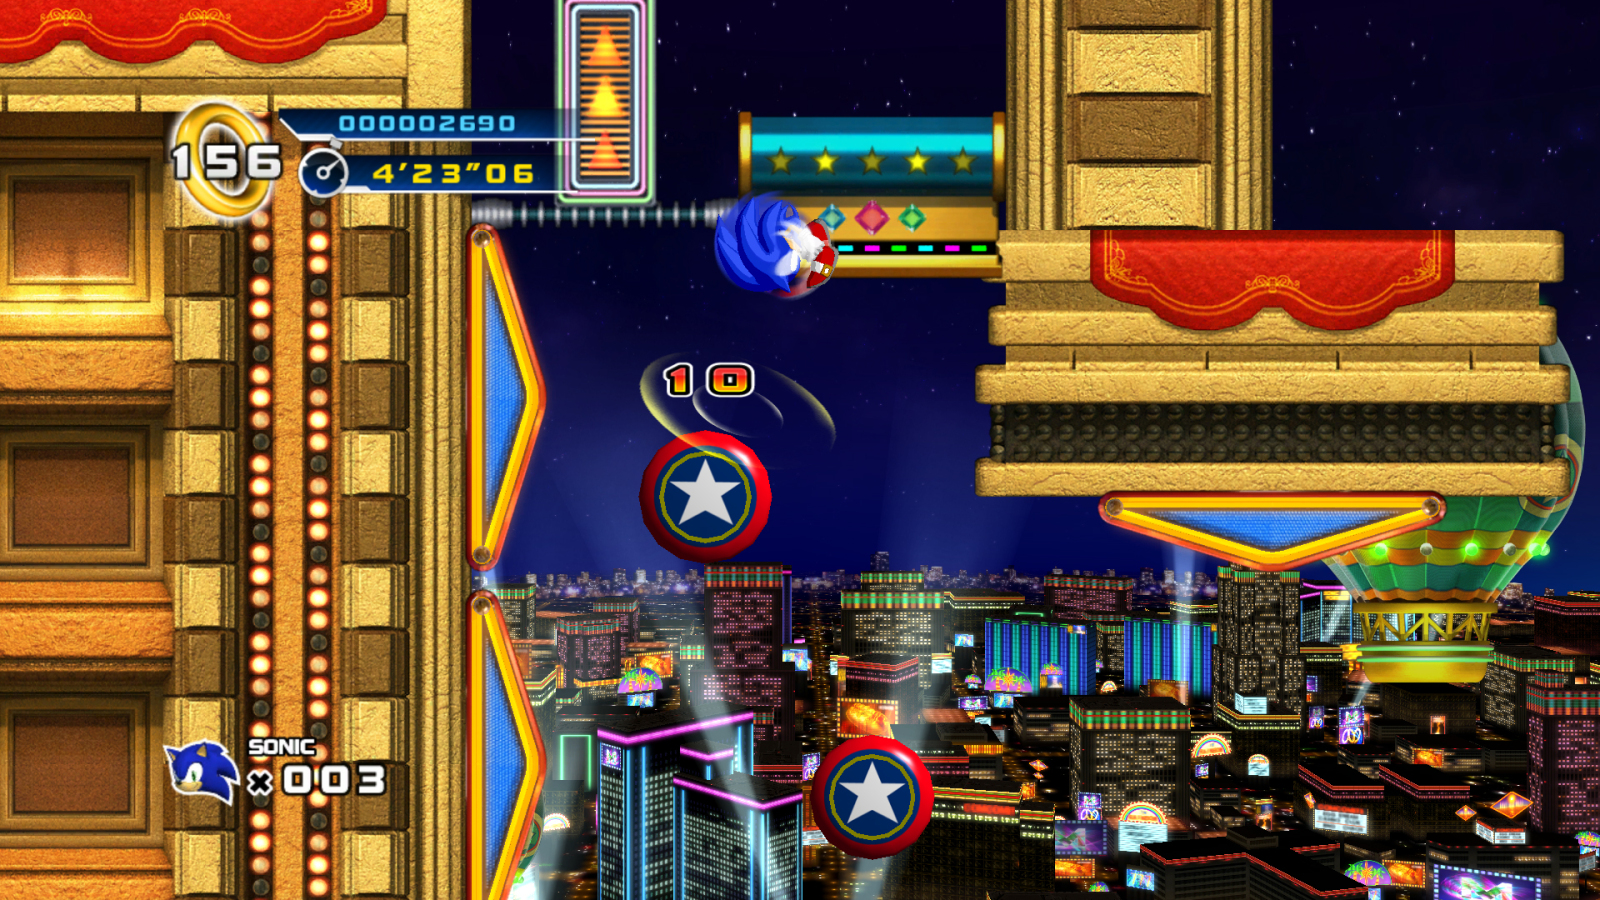 new sonic 4 casino street zone screenshots the sonic stadium. Black Bedroom Furniture Sets. Home Design Ideas